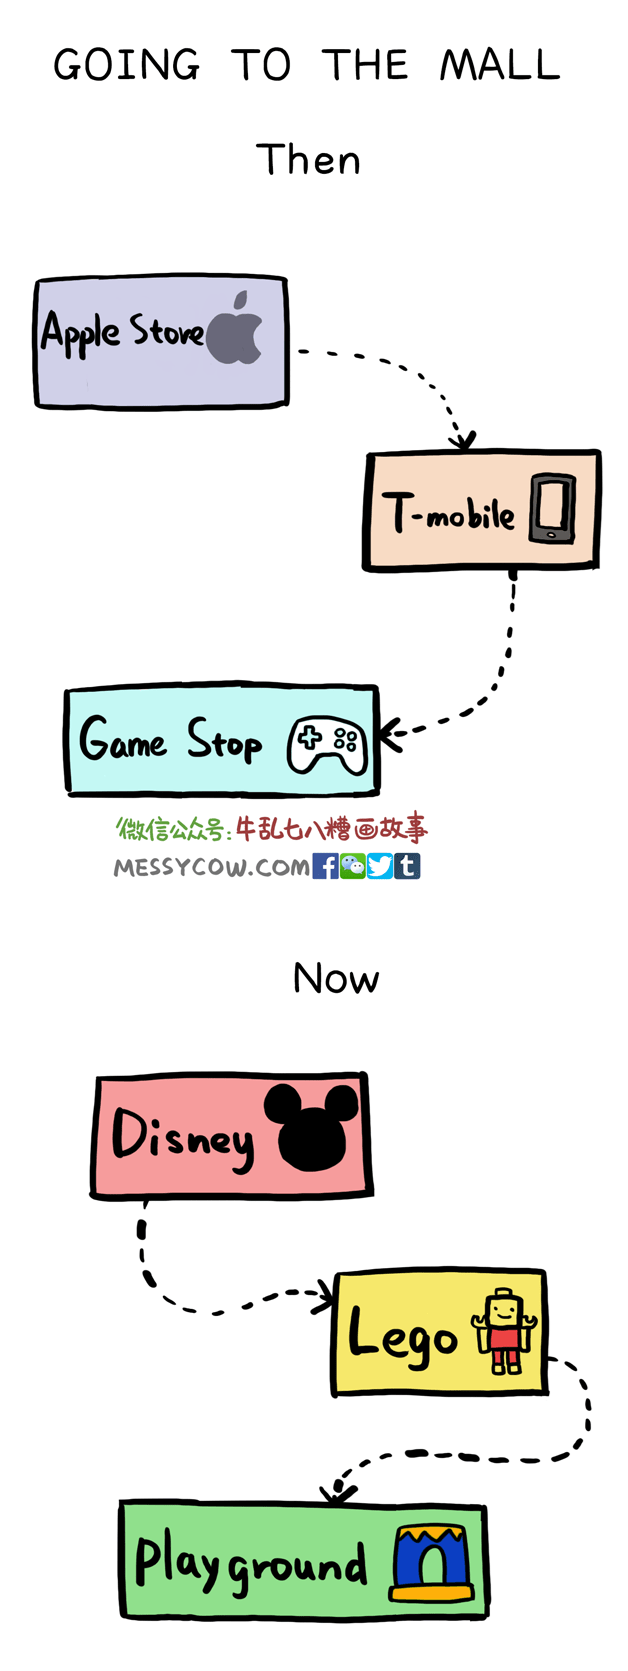 Text - GOING TO THE MALL Then |Apple Store T-mobile Game Stop MESSYCOW.COM f yt Now Disney |Lego Play ground